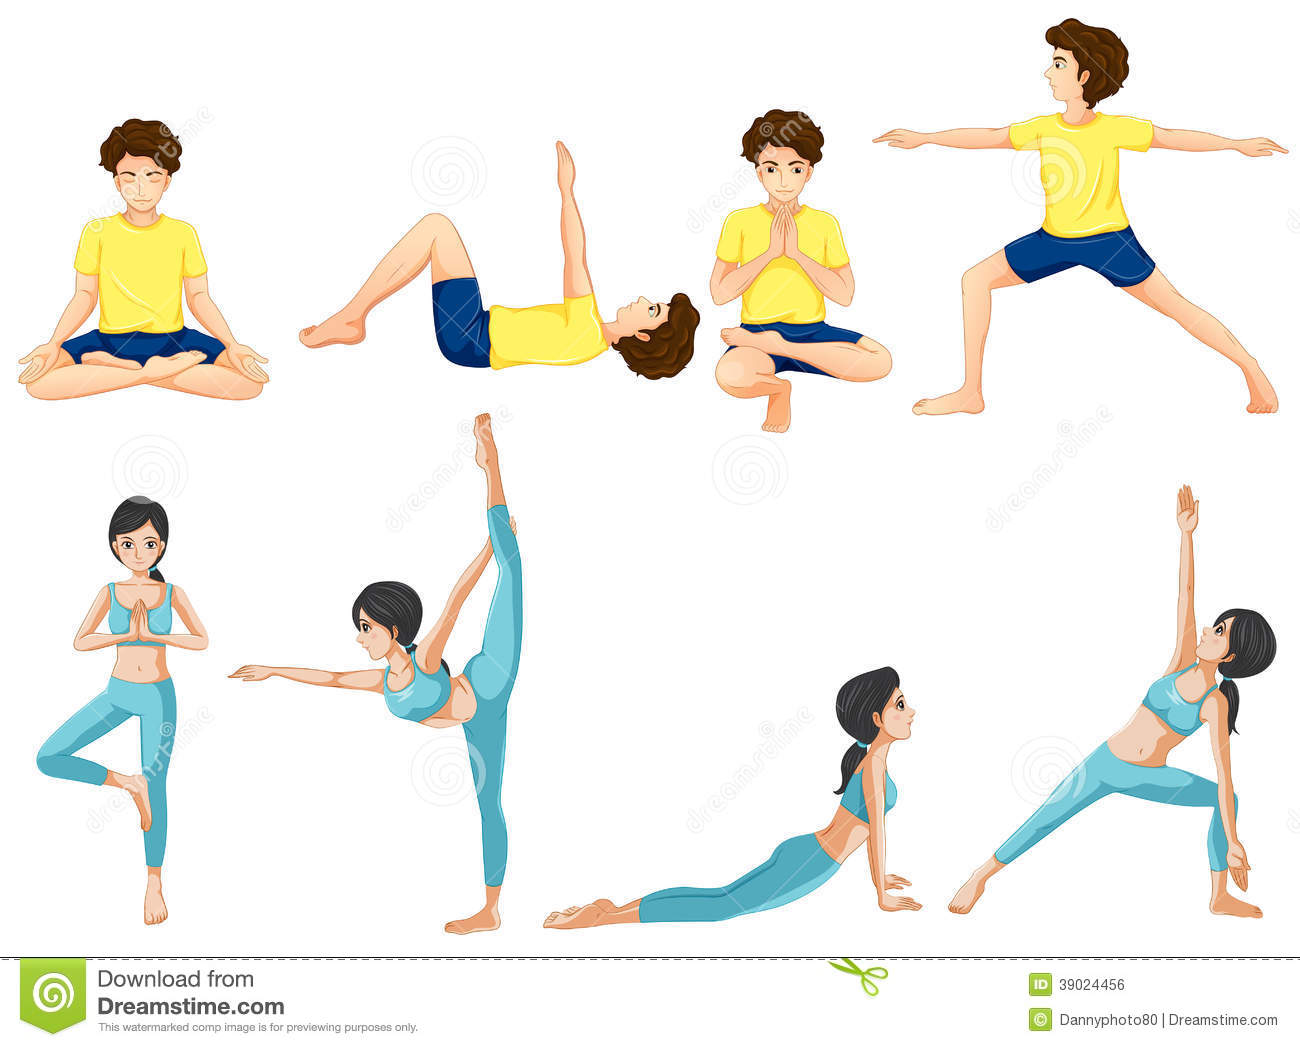 Yoga Poses Sketch Stock Photos, Images, & Pictures - 114 Images